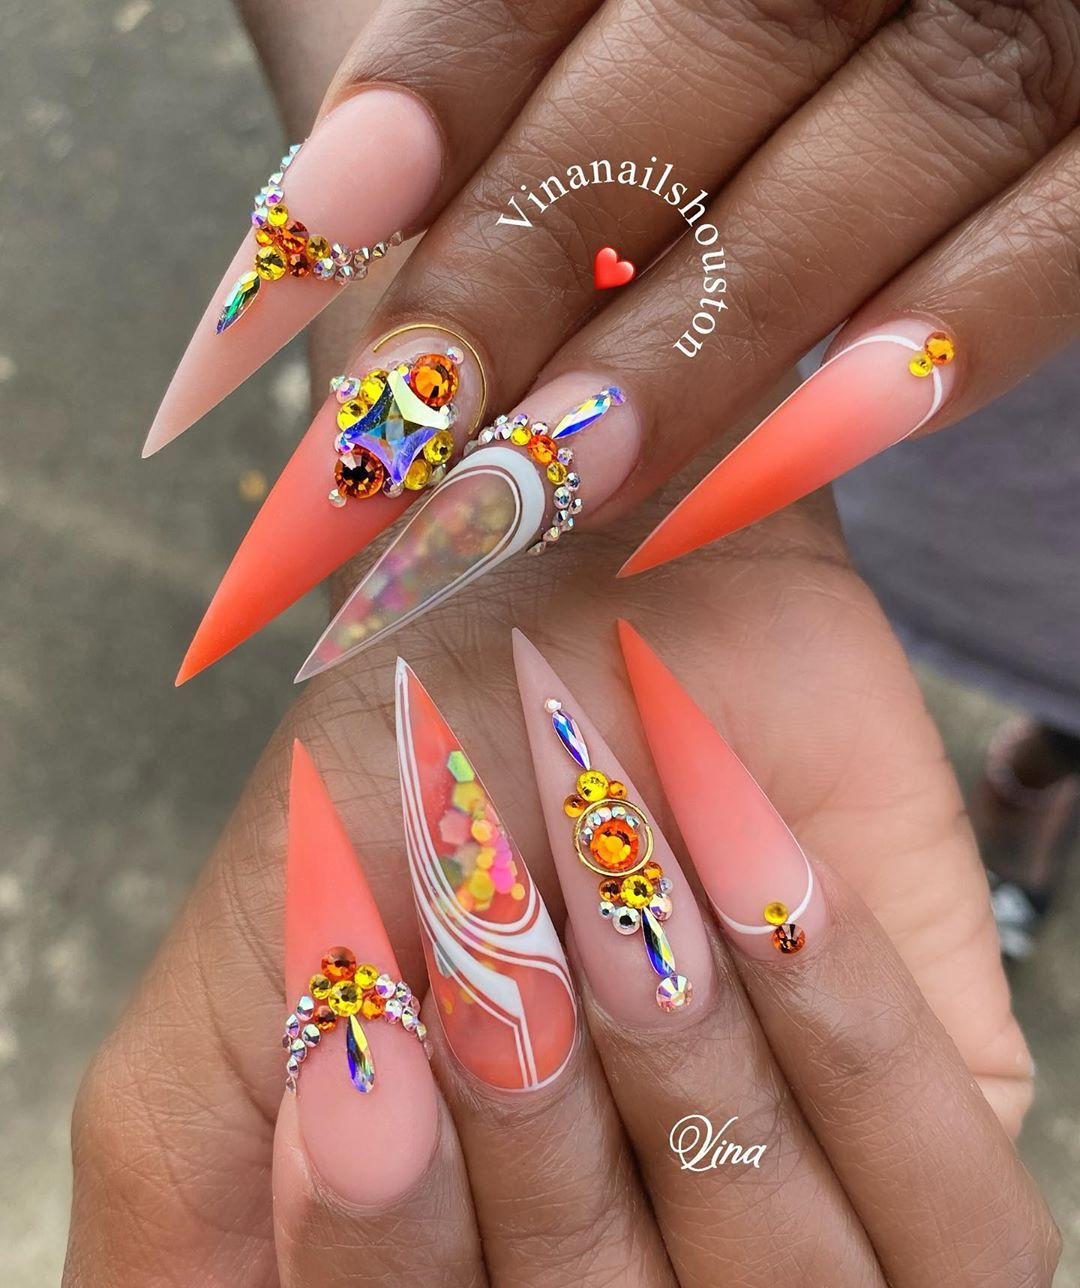 Vina S Academy Training Classes From Basic To Advance From Acrylic To Gel And Everything Else Dm For More Informat In 2020 Stiletto Nails Long Acrylic Nails Nails